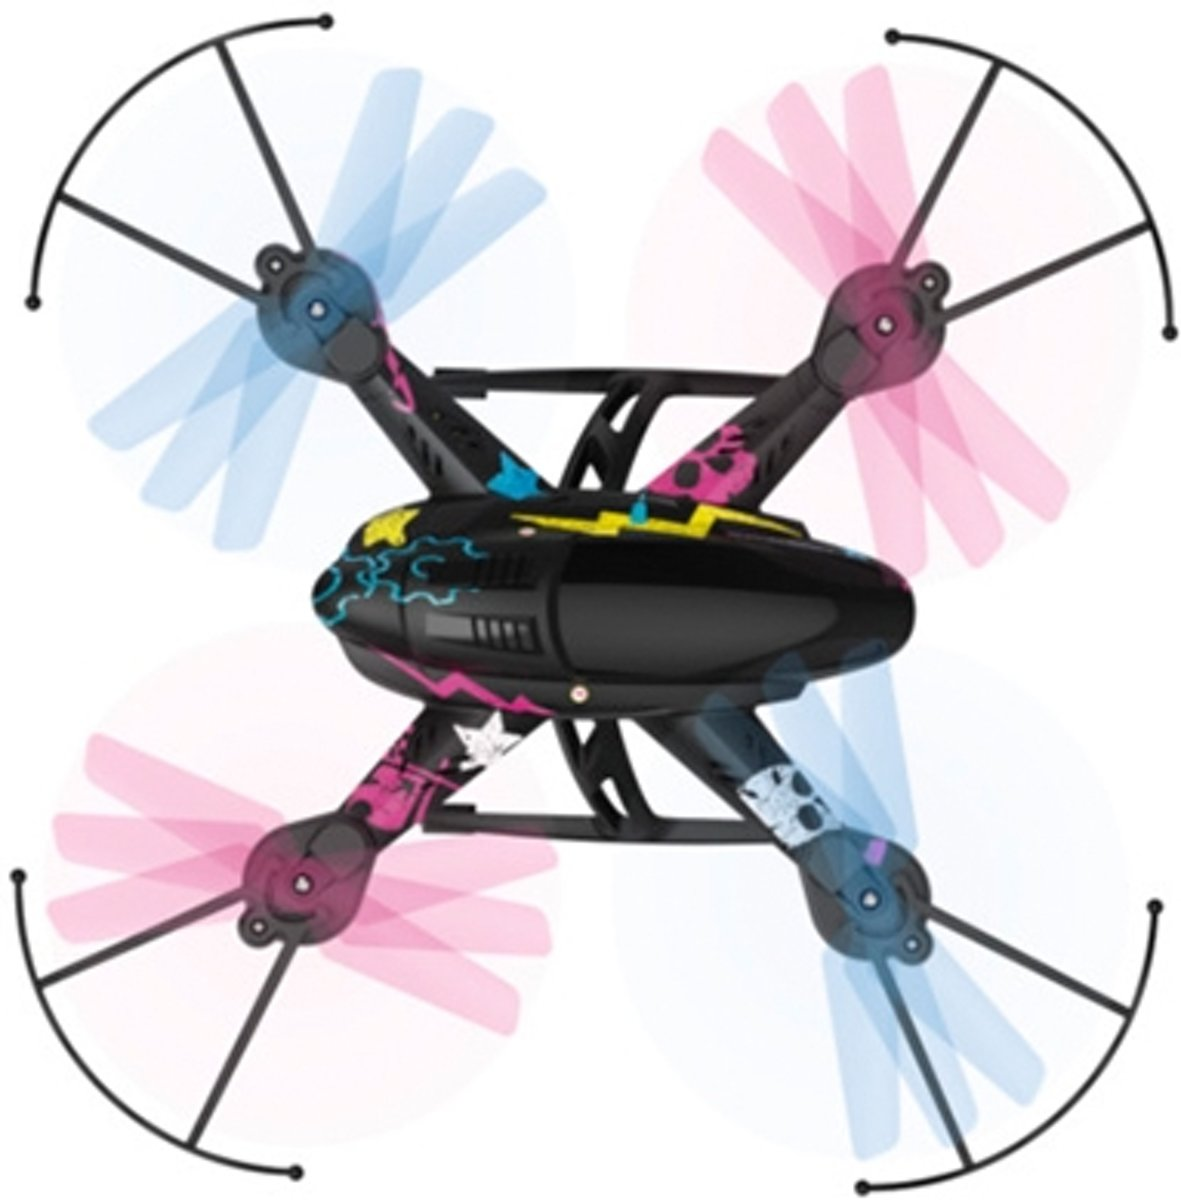 Hama Looptastic camera - Drone Quadcopter - 215 x 215 x 75 mm